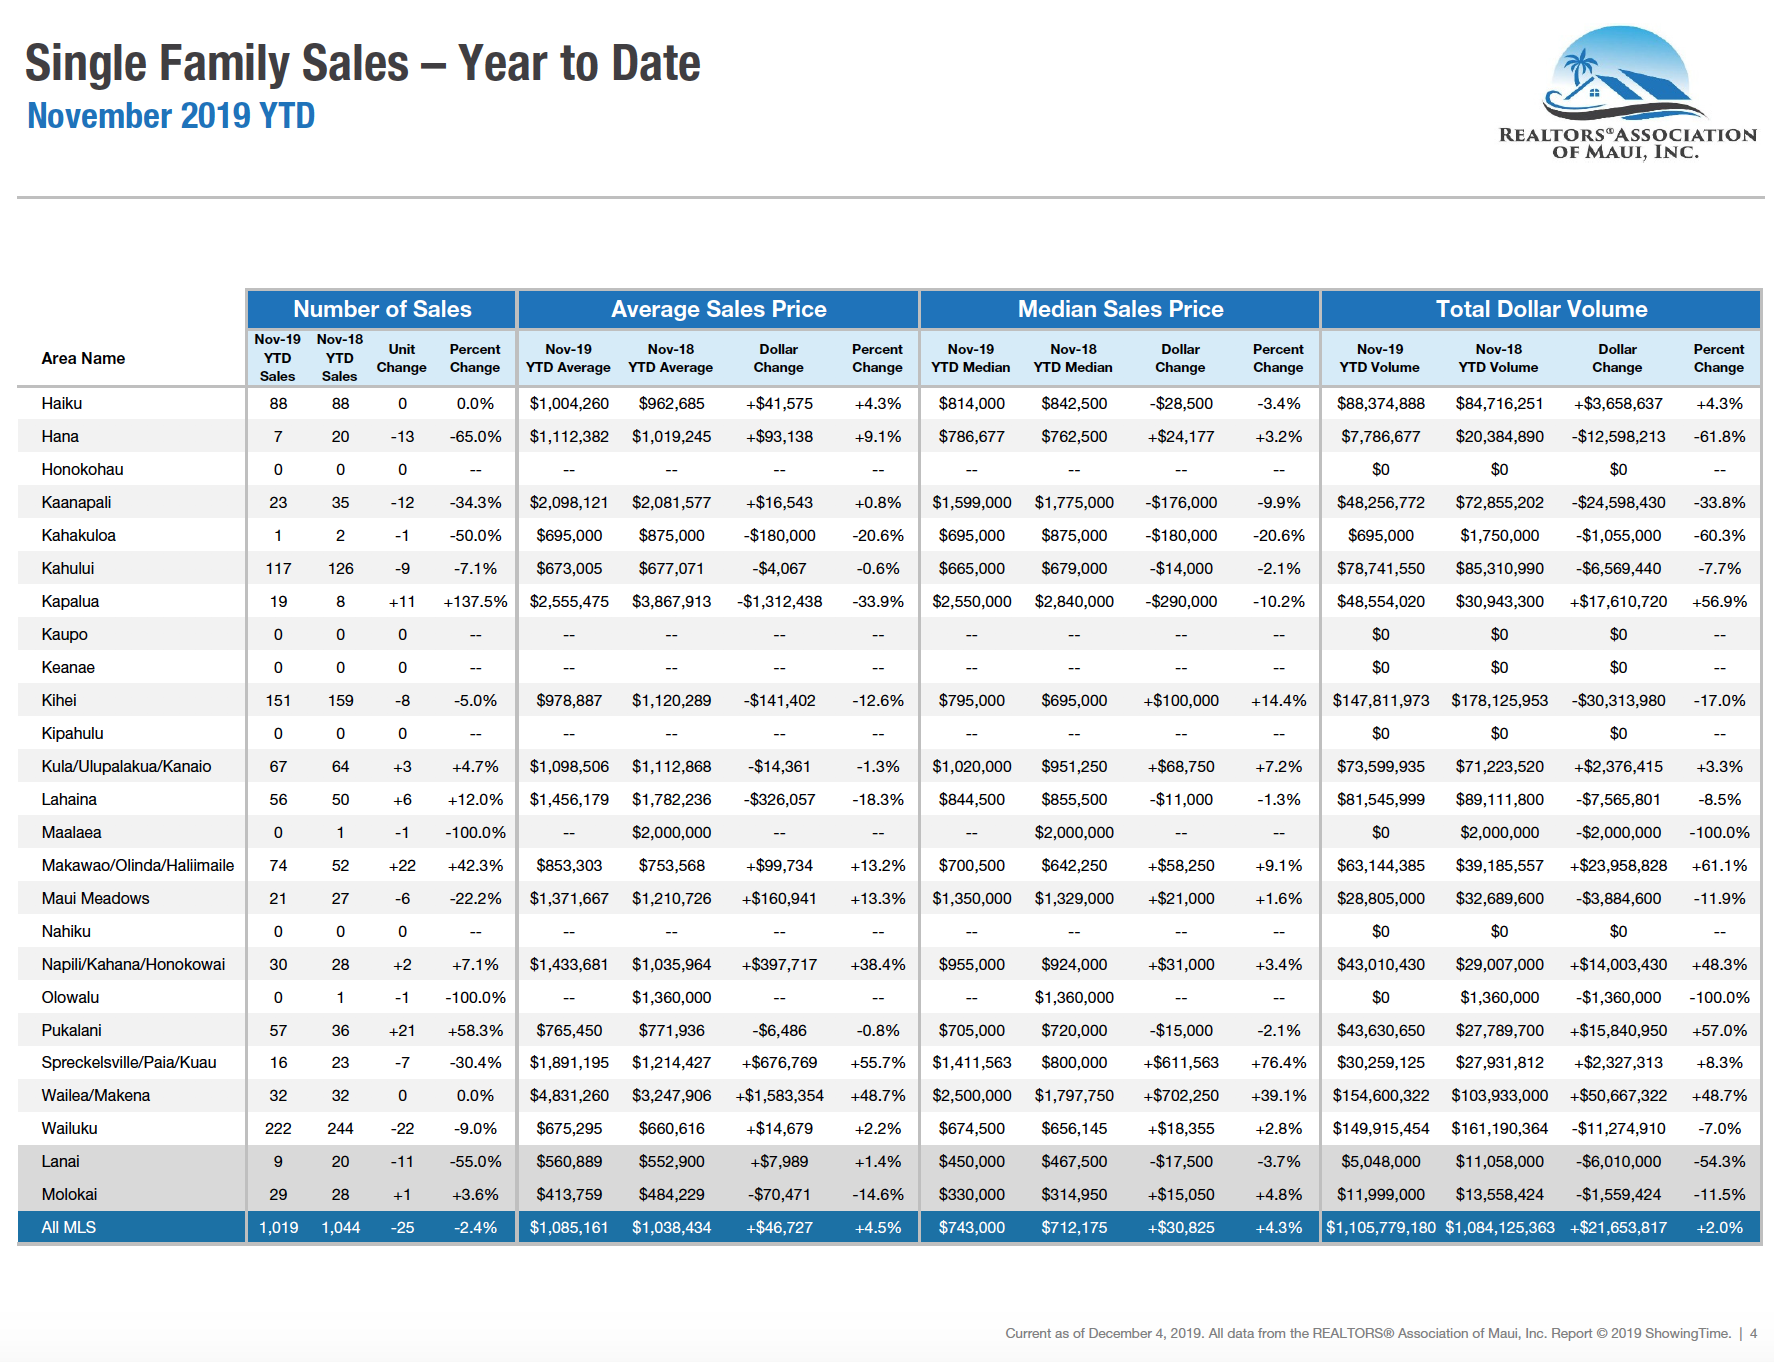 Maui single family home sales year to date through November 2019.